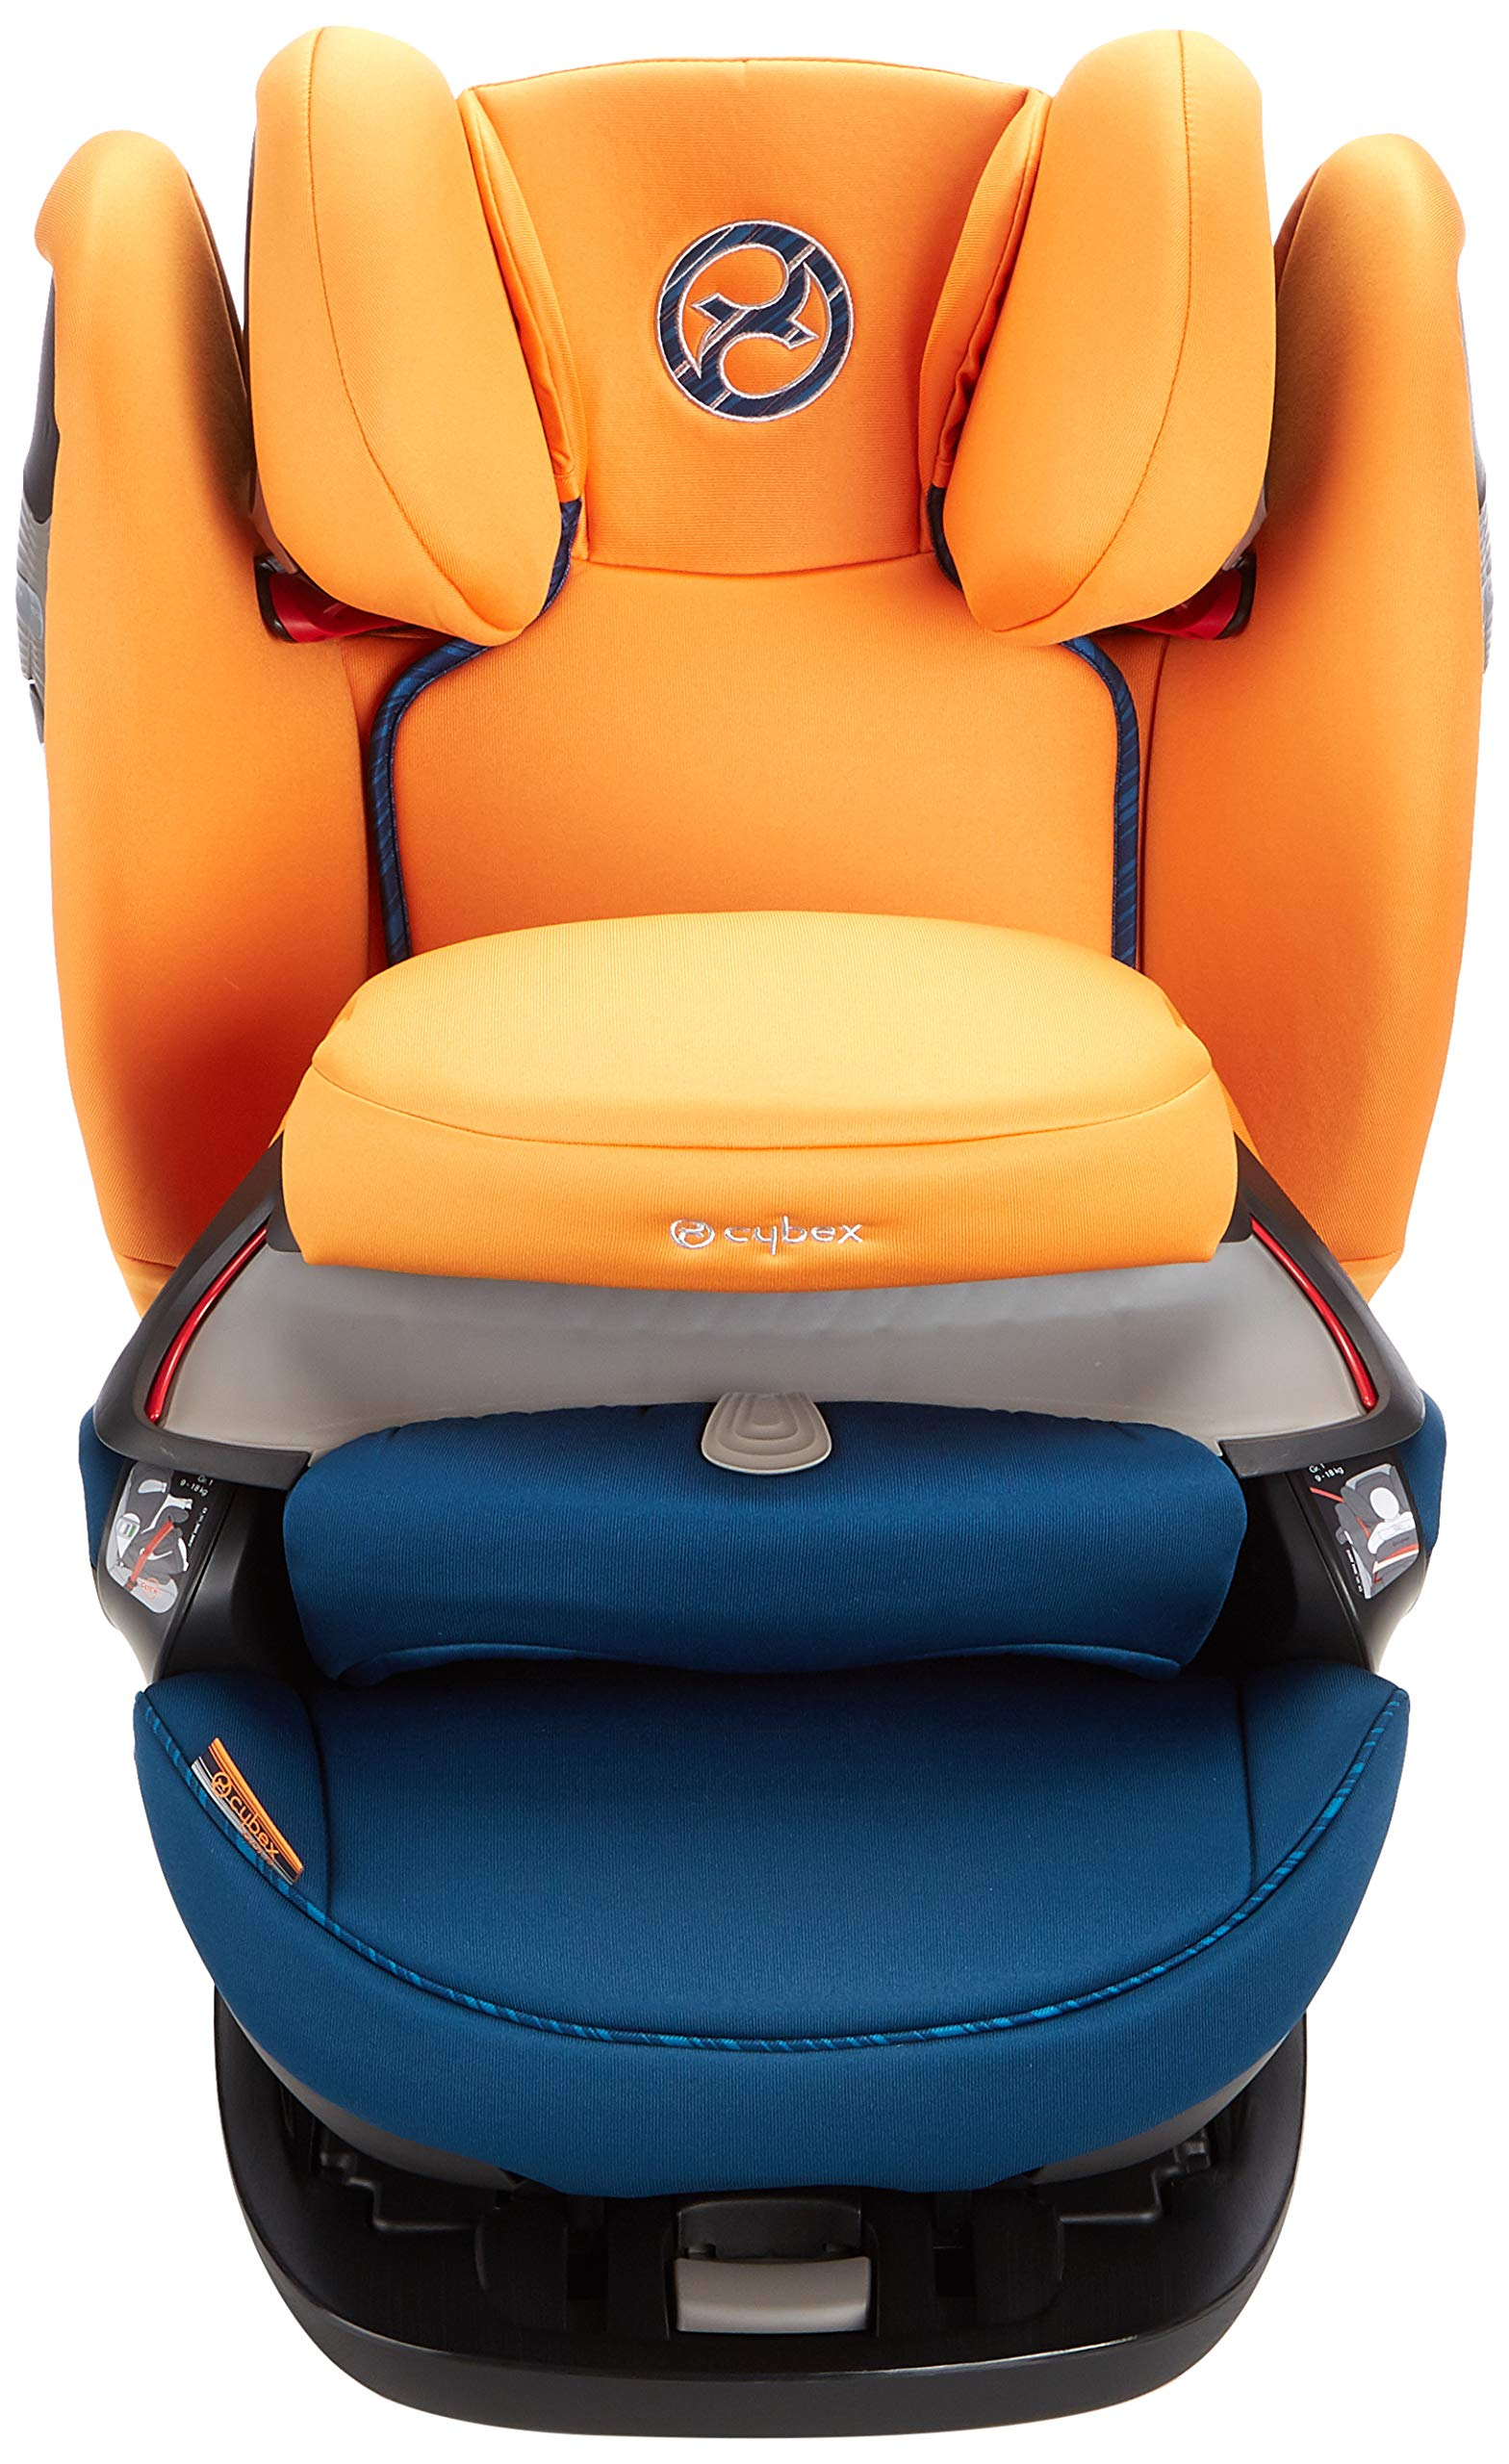 CYBEX Gold Pallas S-Fix 2-in-1 Child's Car Seat, For Cars with and without ISOFIX, Group 1/2/3 (9-36 kg), From approx. 9 Months to approx. 12 Years, Tropical Blue Cybex Sturdy and high-quality child car seat for long-term use - For children aged approx. 9 months to approx. 12 years (9-36 kg), Suitable for cars with and without ISOFIX Maximum safety - Depth-adjustable impact shield, 3-way adjustable reclining headrest, Built-in side impact protection (L.S.P. System), Energy-absorbing shell 12-way height-adjustable comfort headrest, One-hand adjustable reclining position, Easy conversion to Solution S-Fix car seat for children 3 years and older (group 2/3) by removing impact shield and base 2